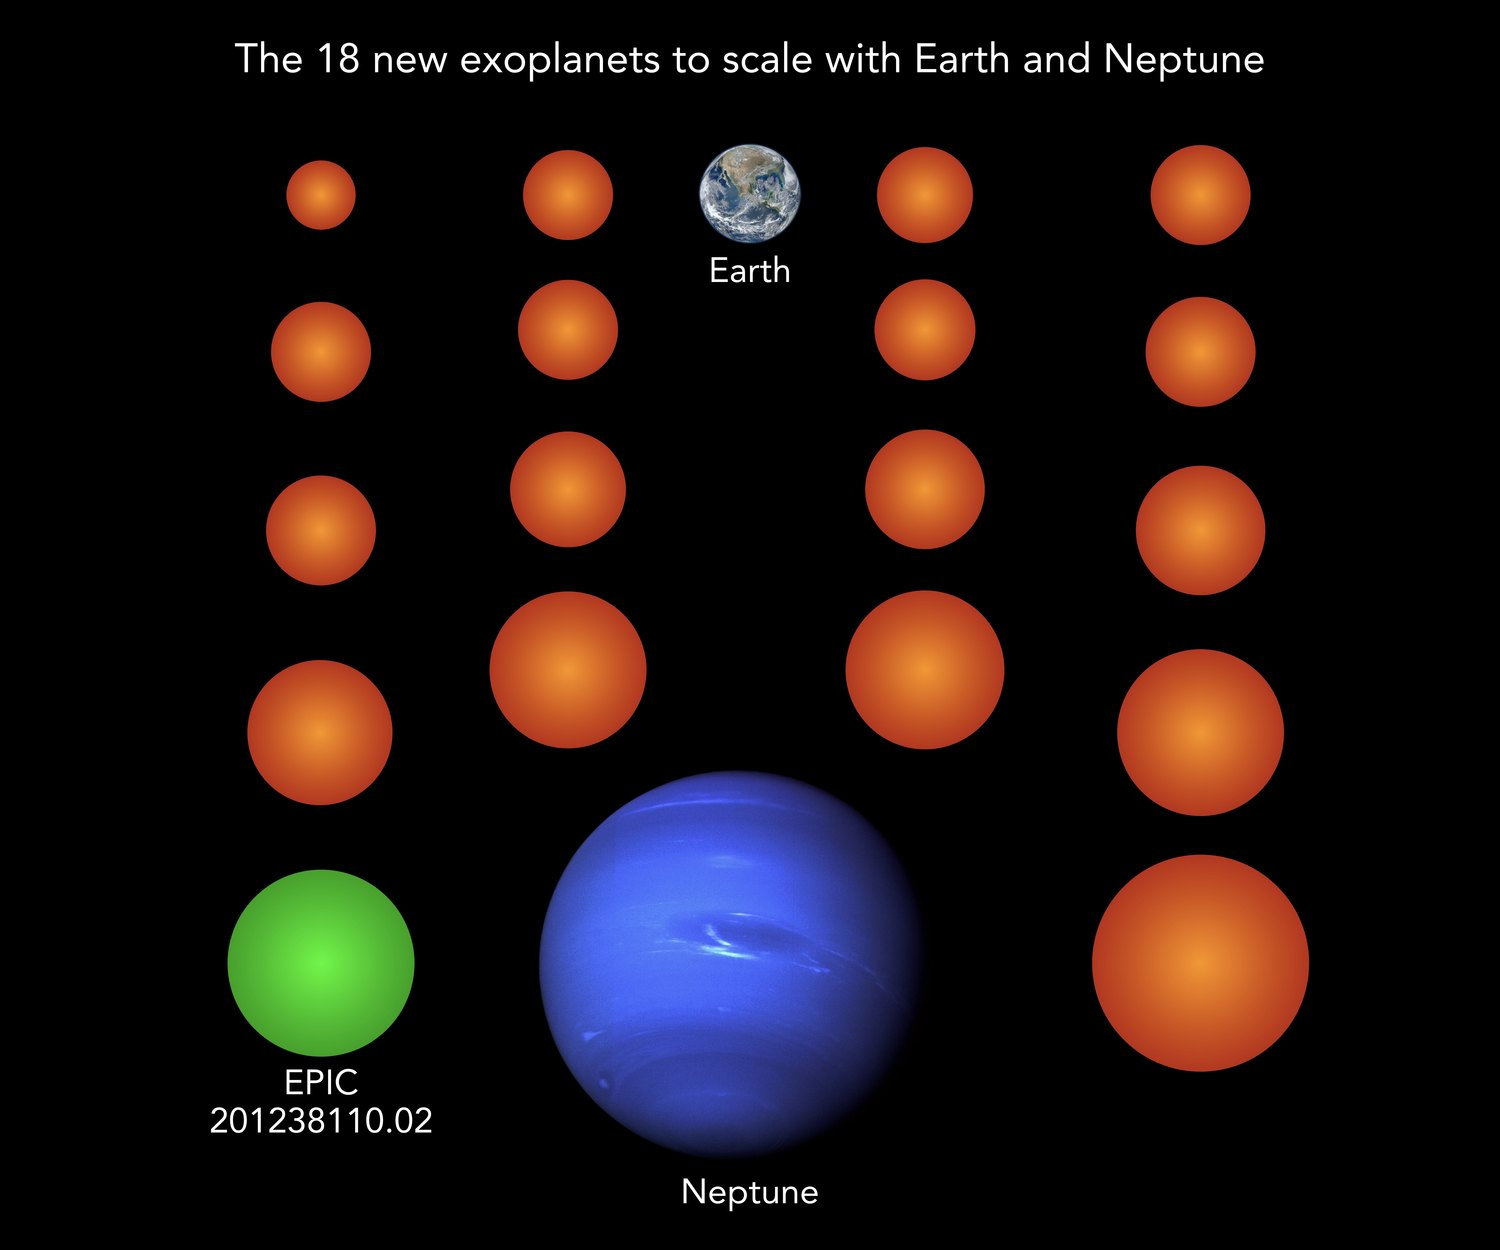 Almost all known exoplanets are larger than Earth and typically as large as the gas planet Neptune. The 18 newly discovered planets (here in orange and green), for comparison, are much smaller than Neptune, three of them even smaller than Earth and two more as large as Earth. Planet EPIC 201238110.02 is the only one of the new planets cool enough to potentially host liquid water on its surface.